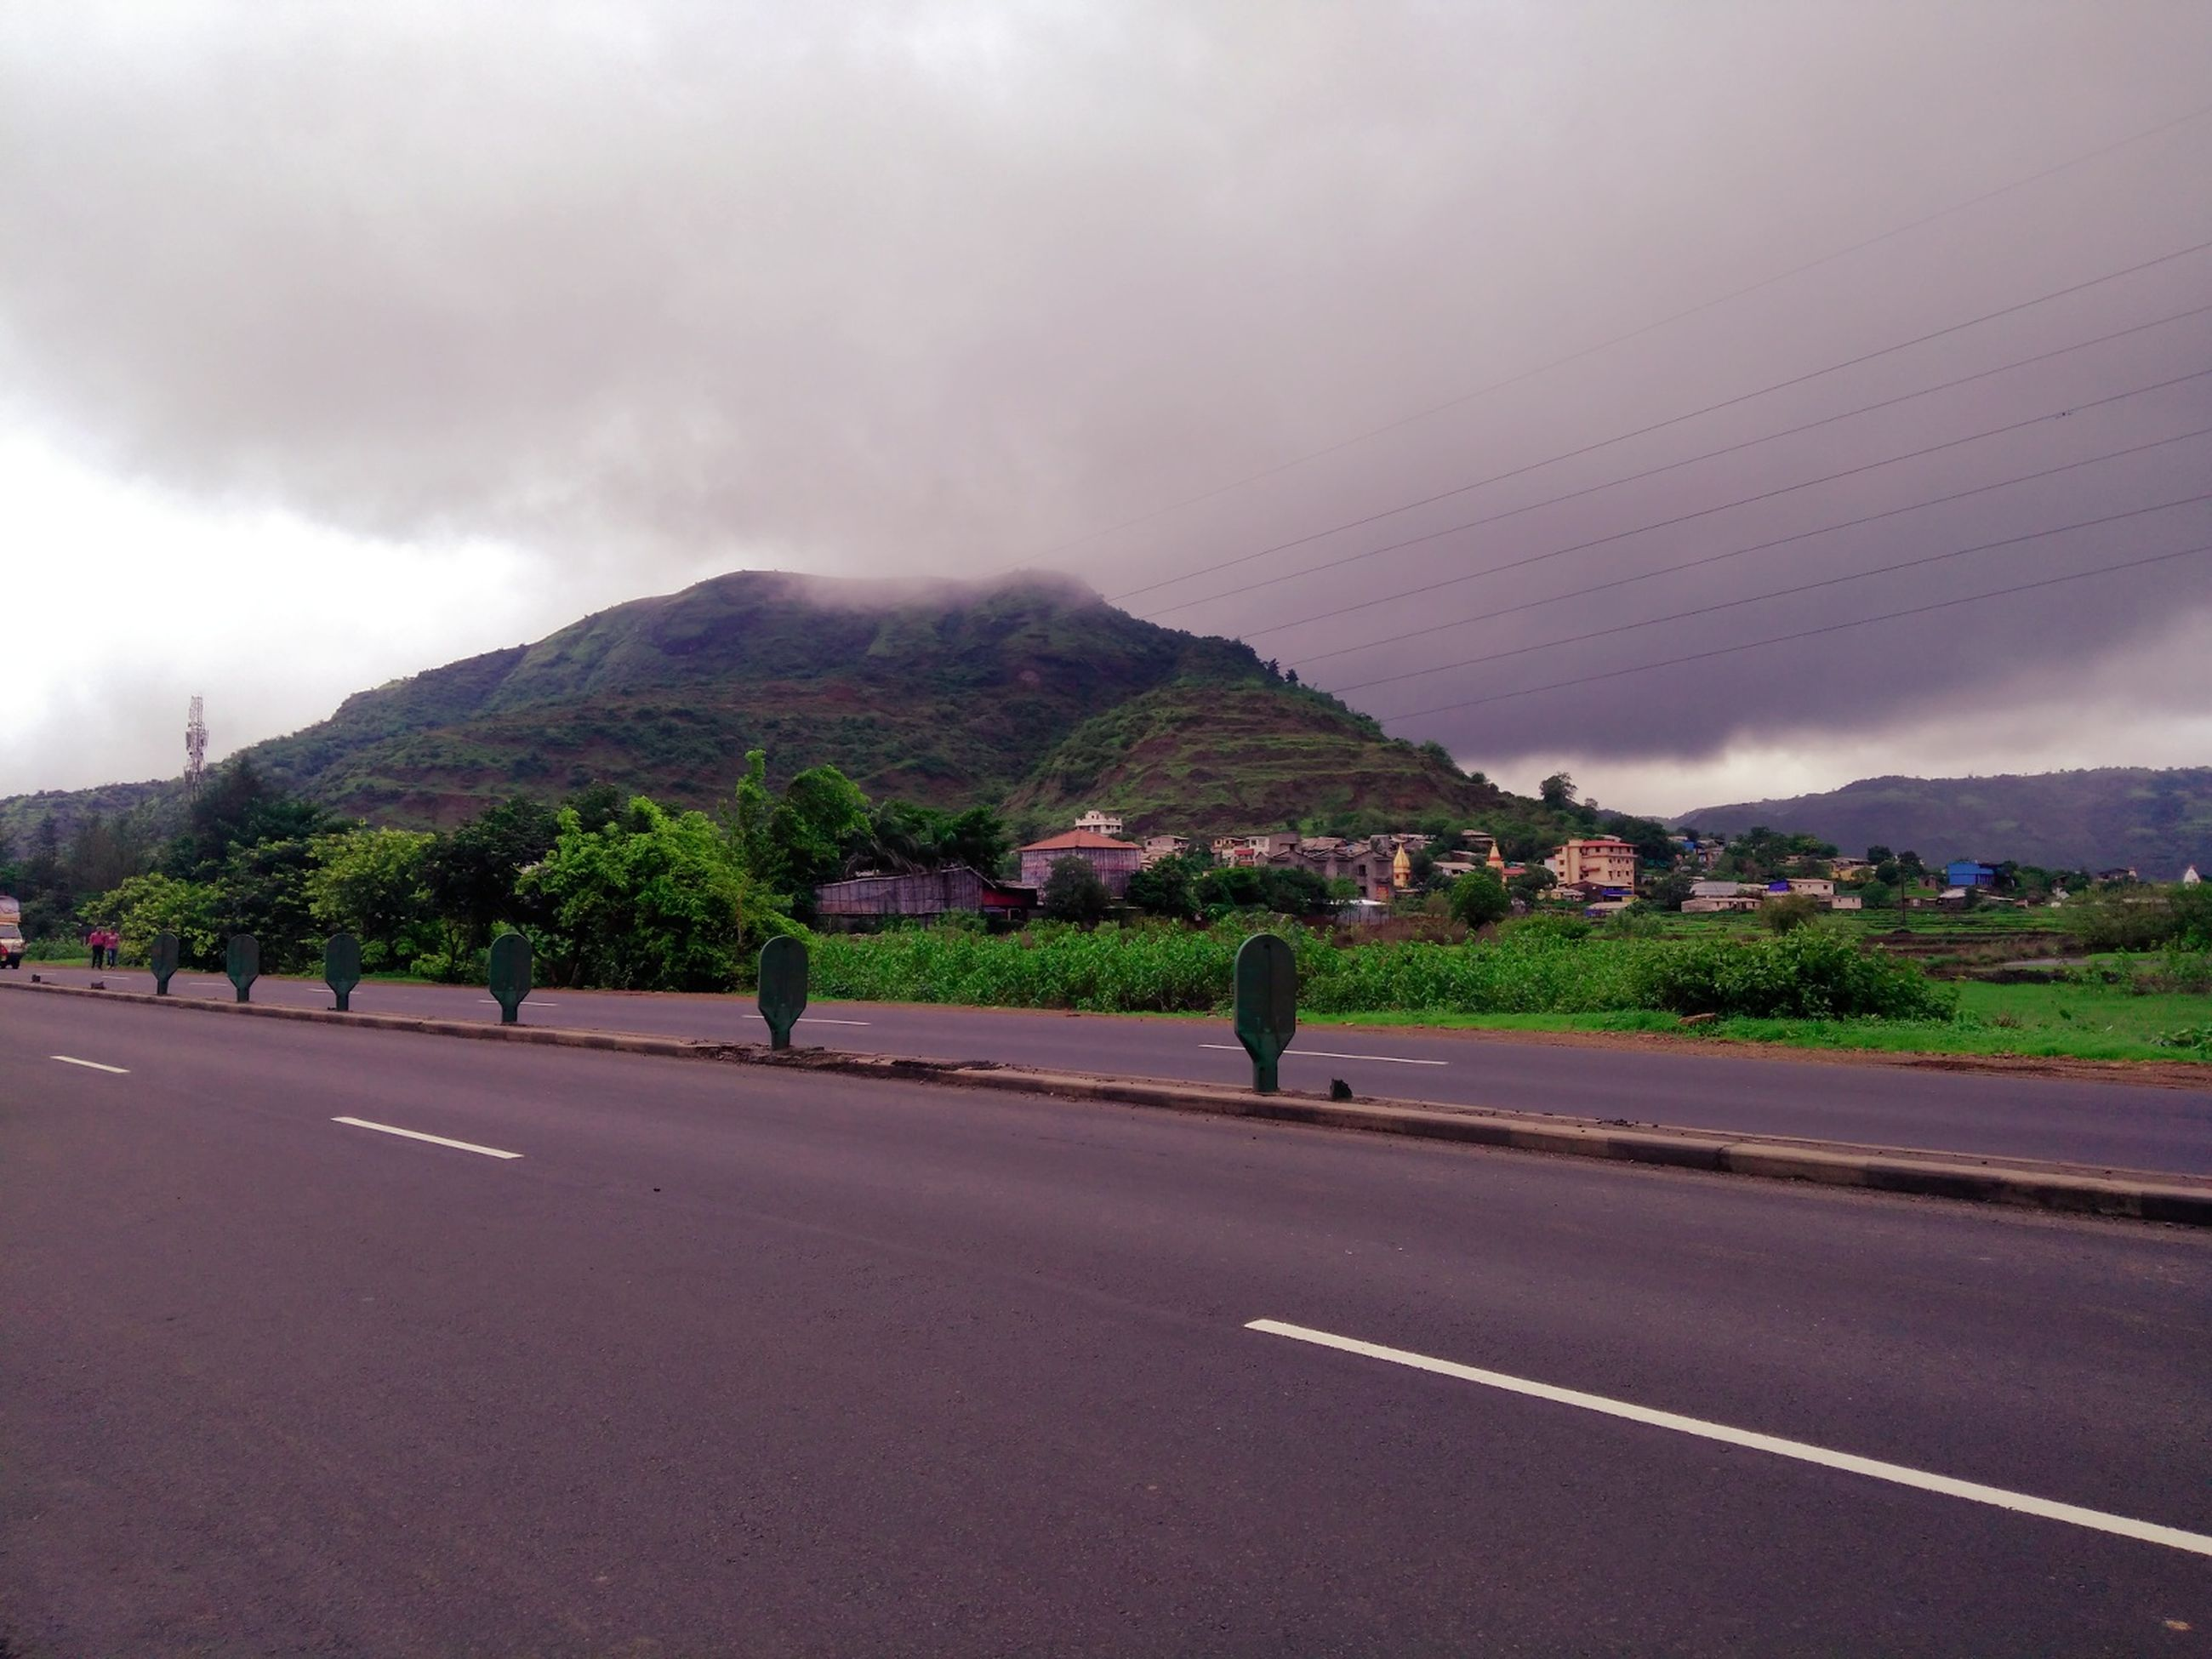 mountain, road, transportation, sky, outdoors, nature, cloud - sky, mountain range, day, real people, scenics, the way forward, landscape, men, beauty in nature, tree, people